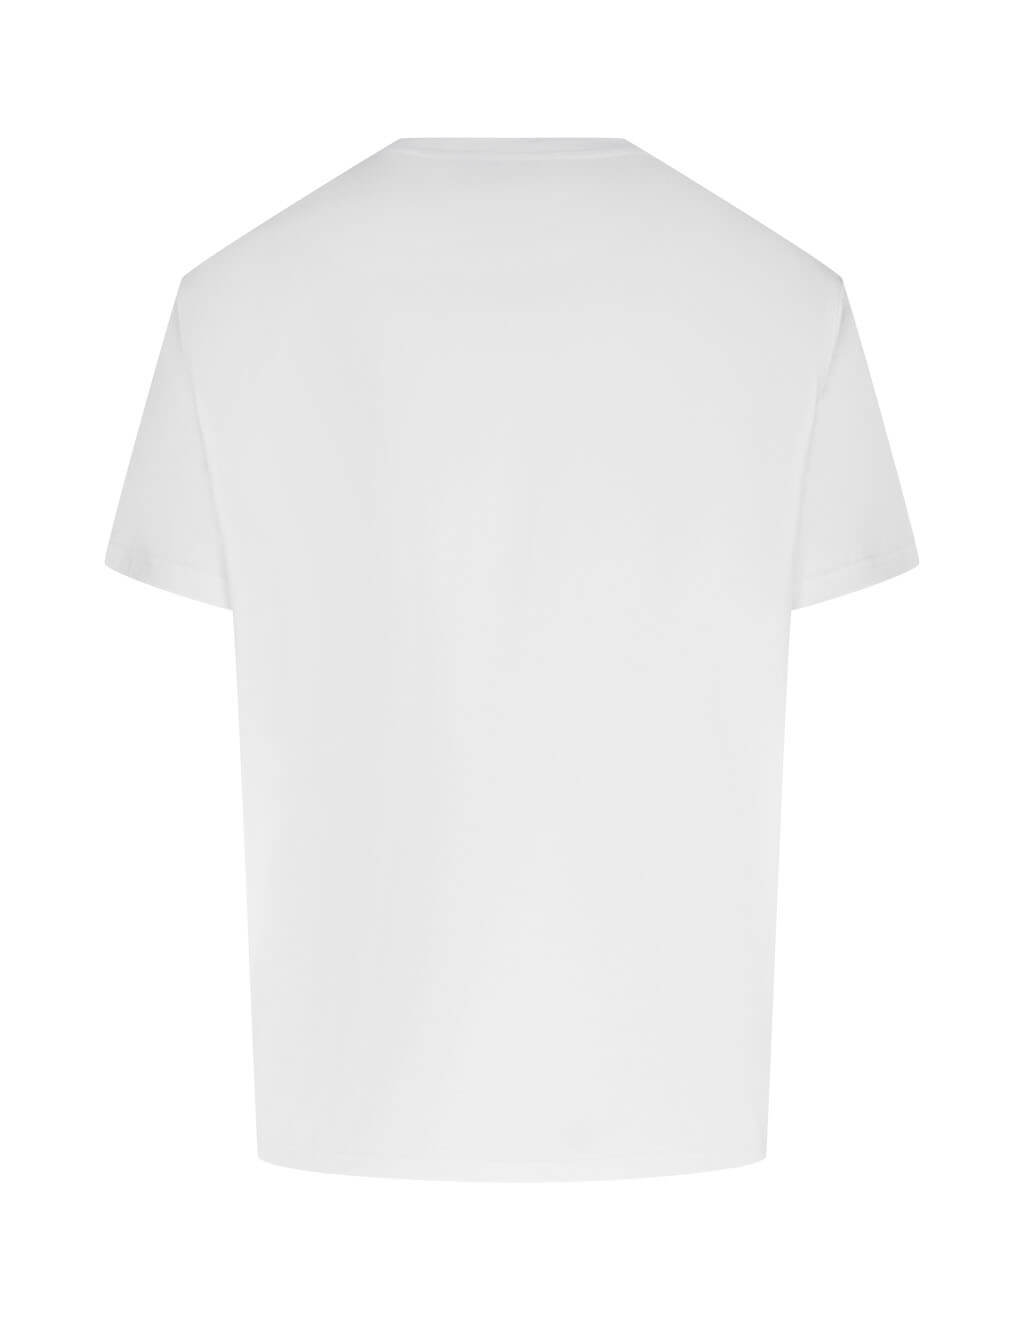 Men's Givenchy Latex Band T-Shirt in White - BM70ZR3002-100